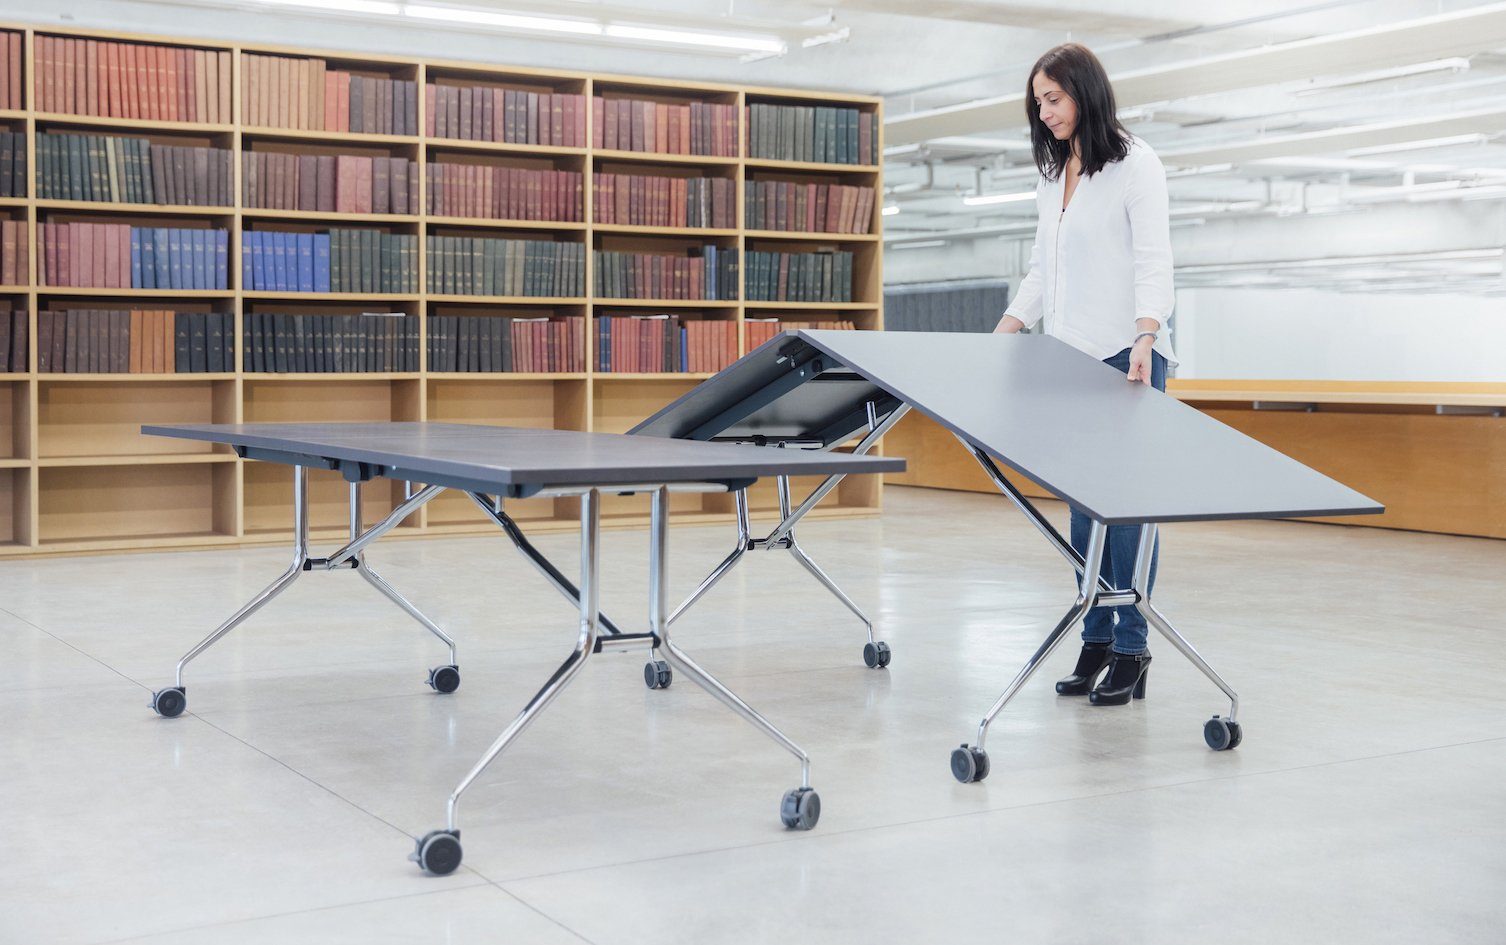 Various Reasons To Use Folding Table at Workplace Or Home